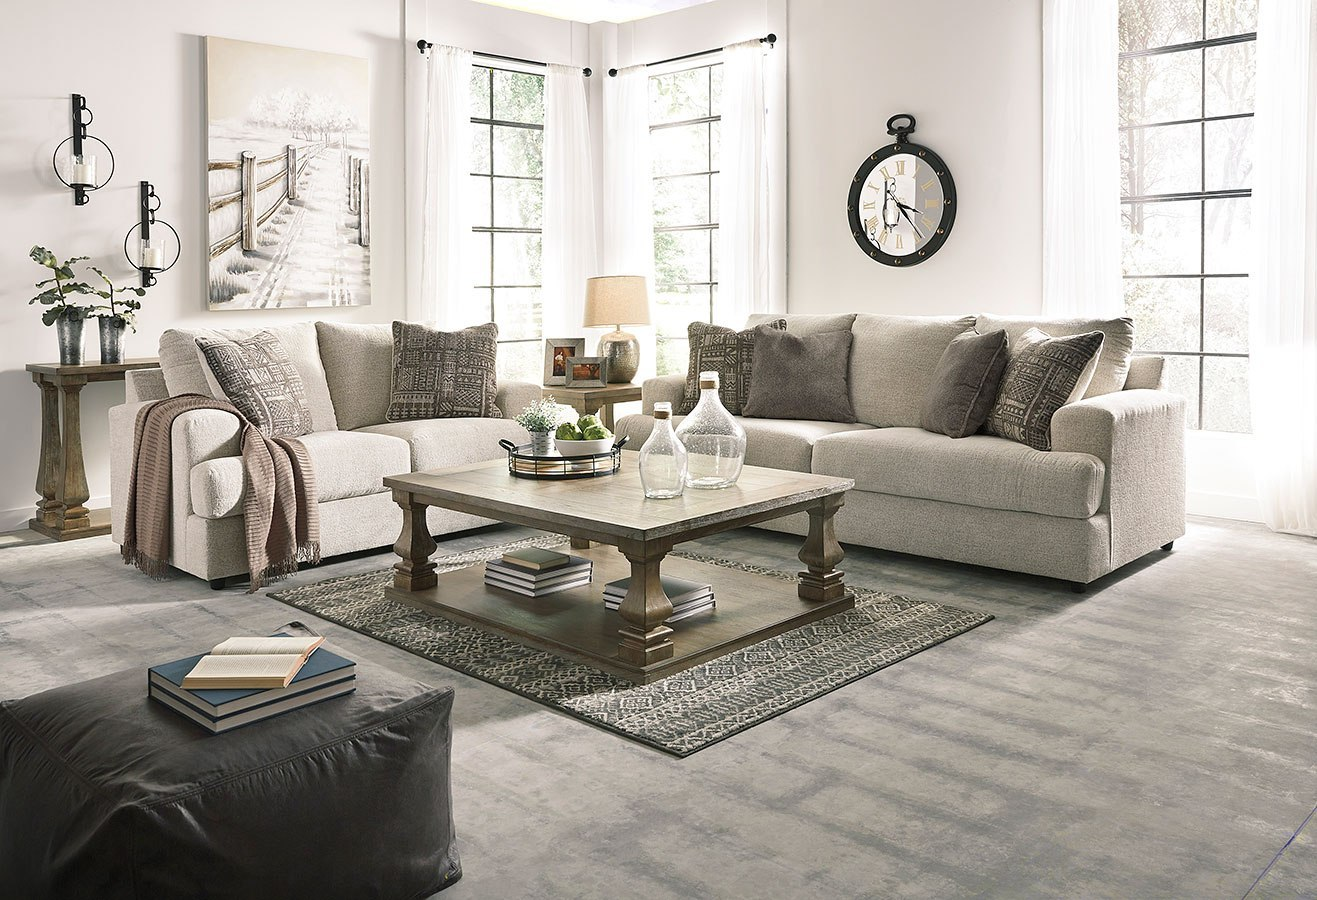 Soletren Stone Living Room Set By Signature Design By